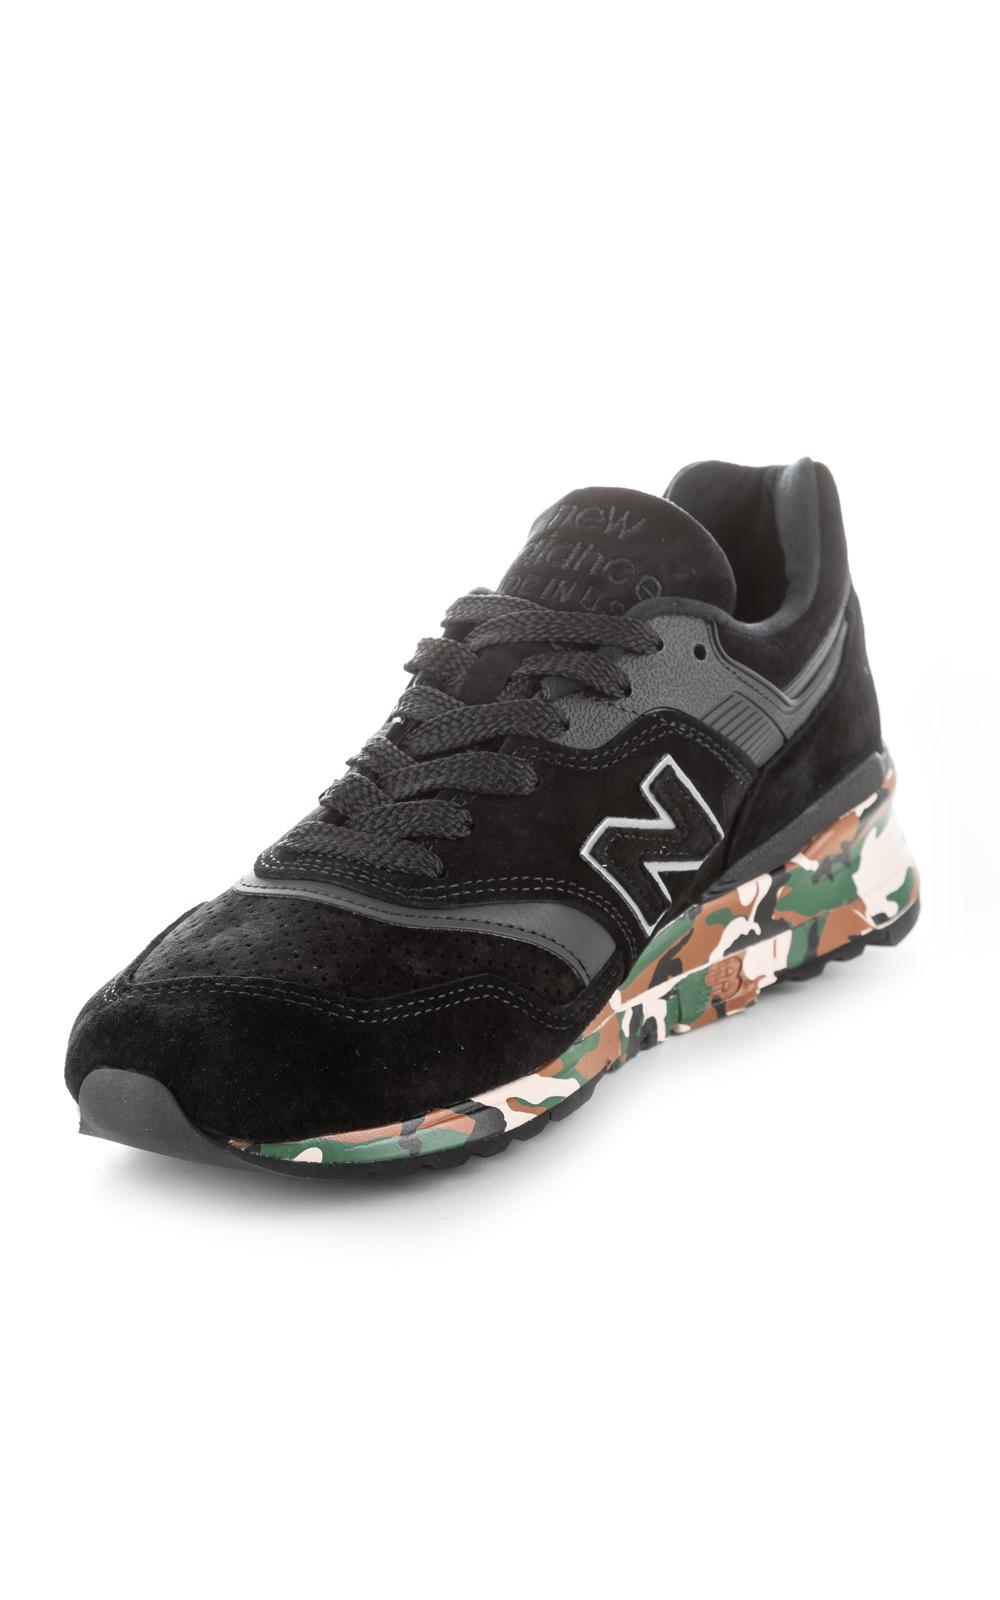 New Balance Leather M997 Cmo Black Quot Made In Usa Quot For Men